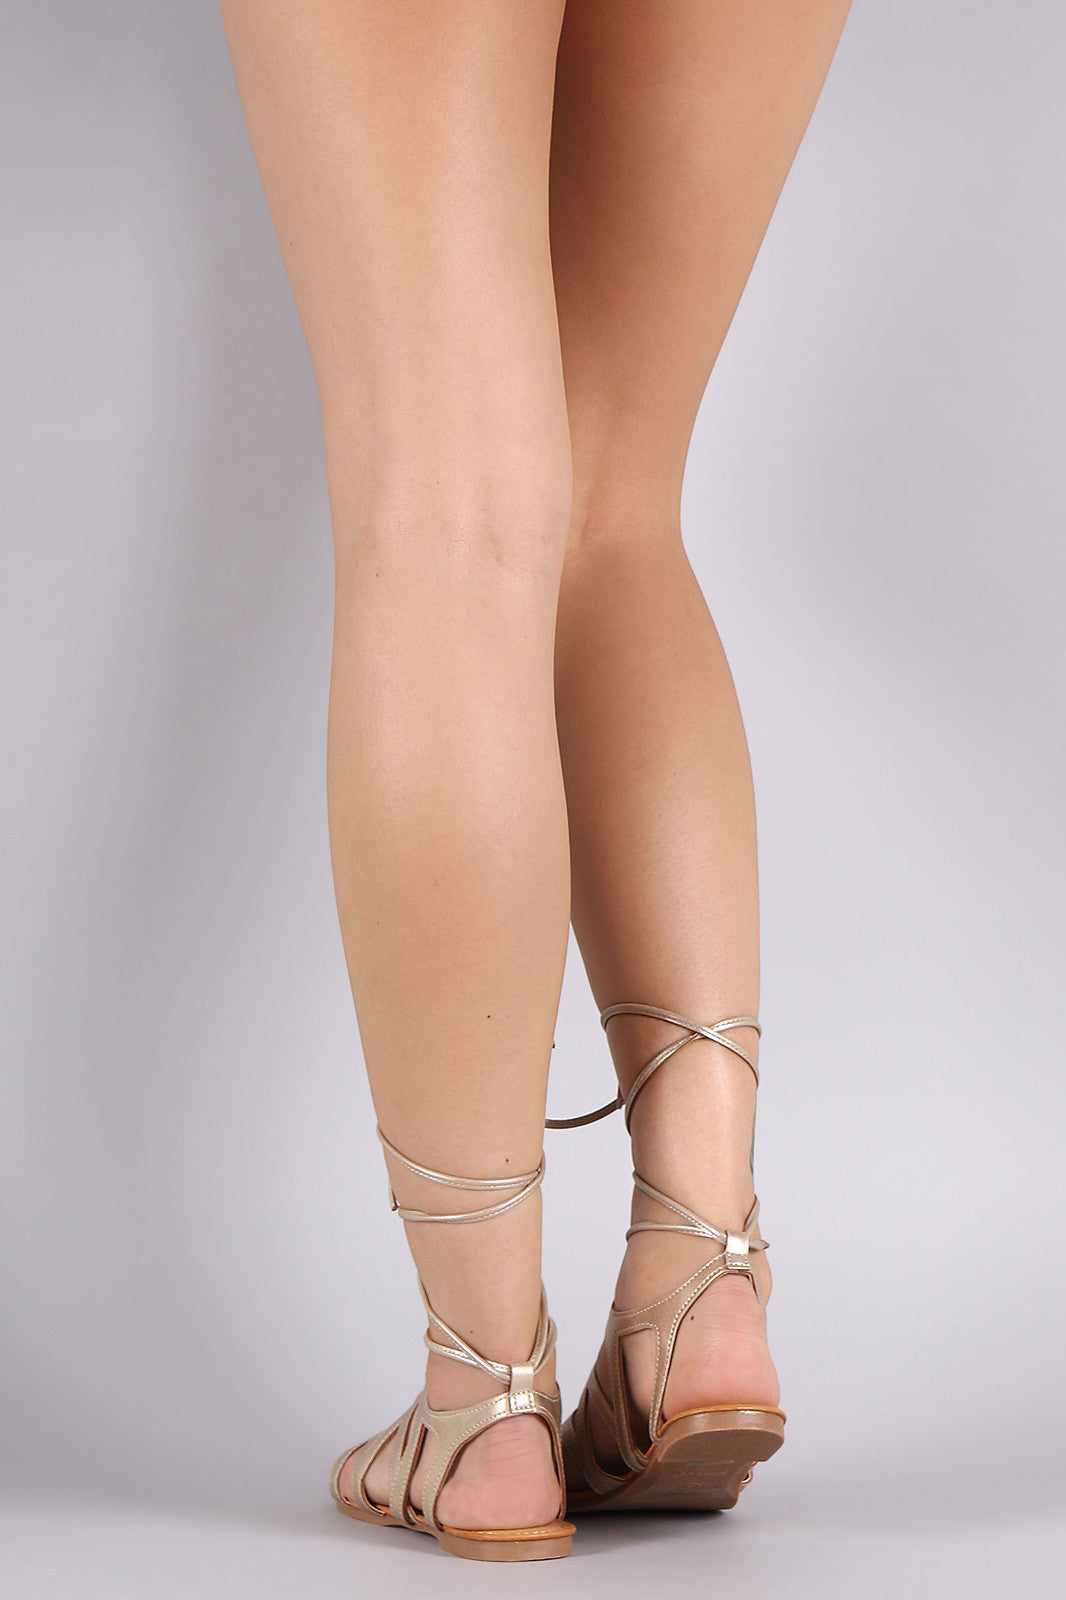 Bamboo Leg Wrap Lace Up Gladiator Sandal - Thick 'N' Curvy Shop - 3